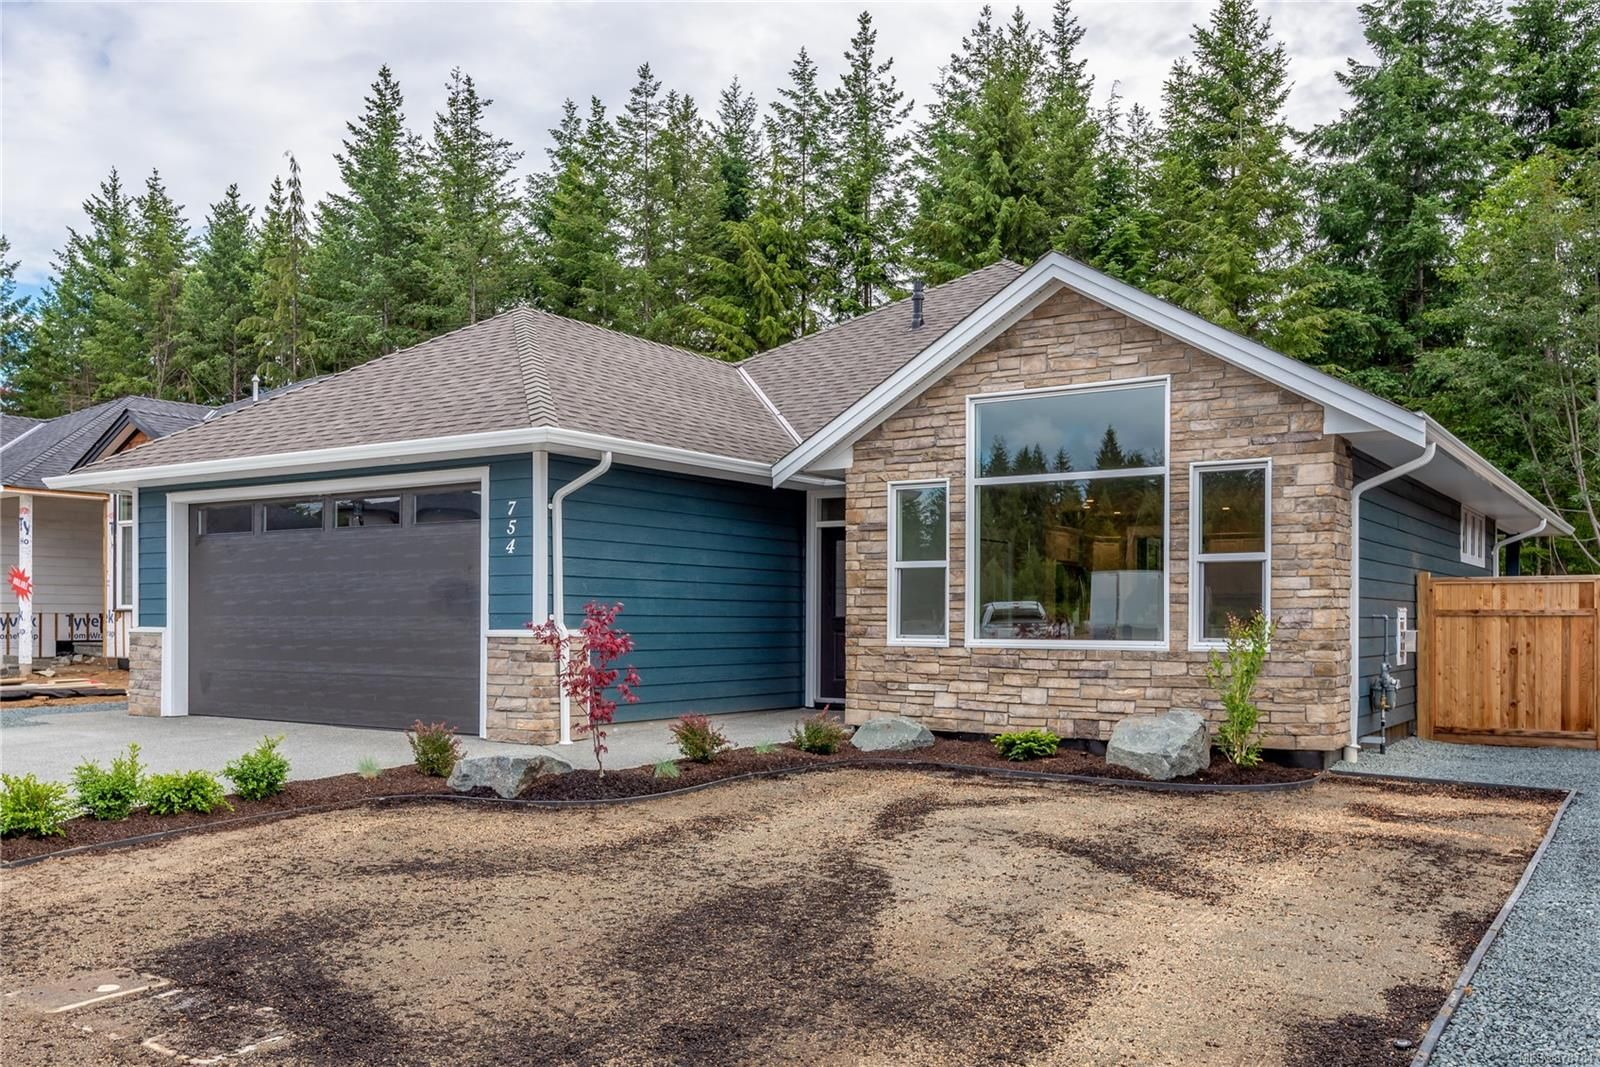 Main Photo: 754 Salal St in : CR Campbell River South House for sale (Campbell River)  : MLS®# 878784